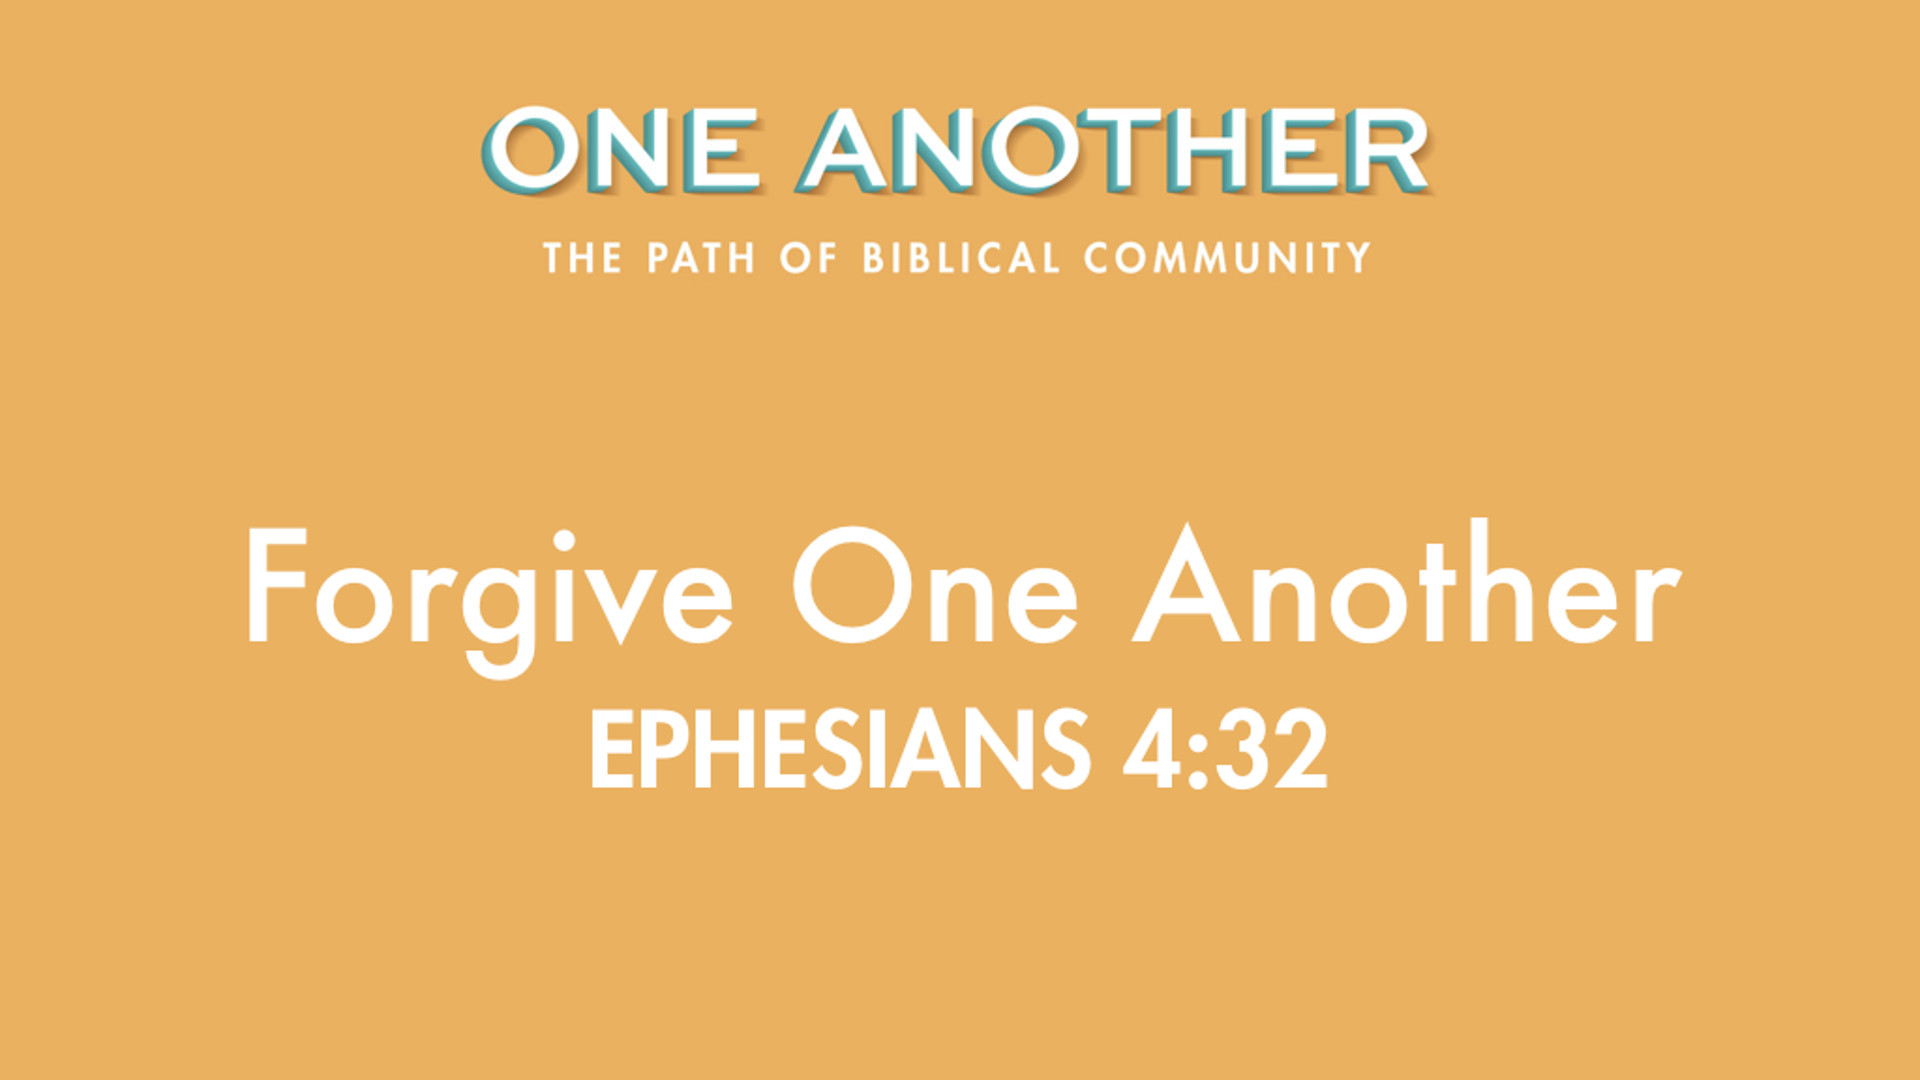 6Forgive One Another - Ephesians 4.32.jpg